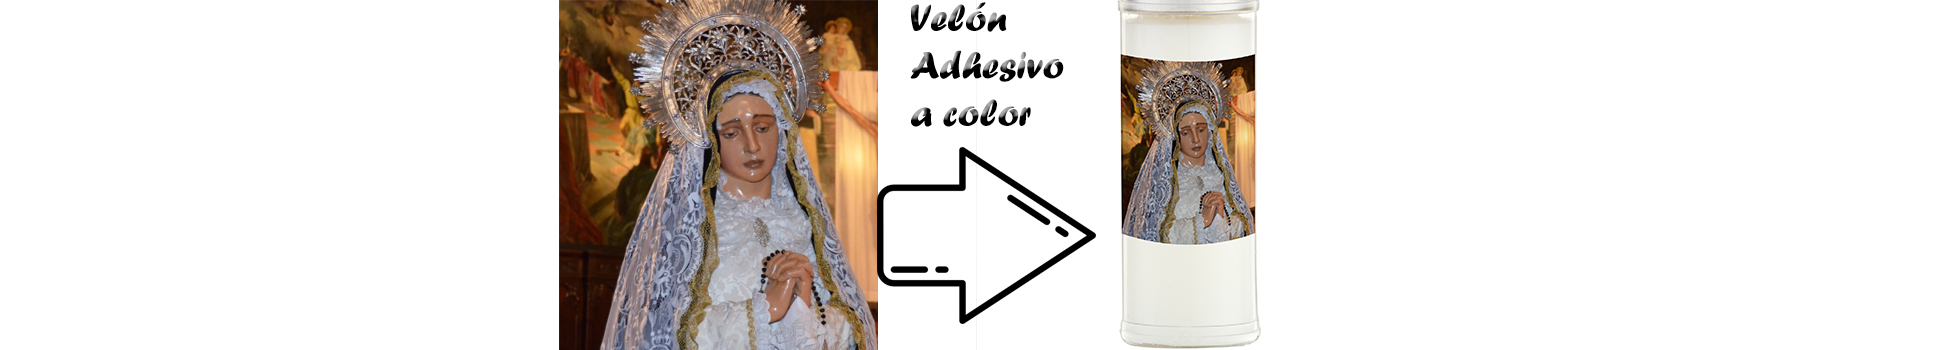 velon-adhesivo-color